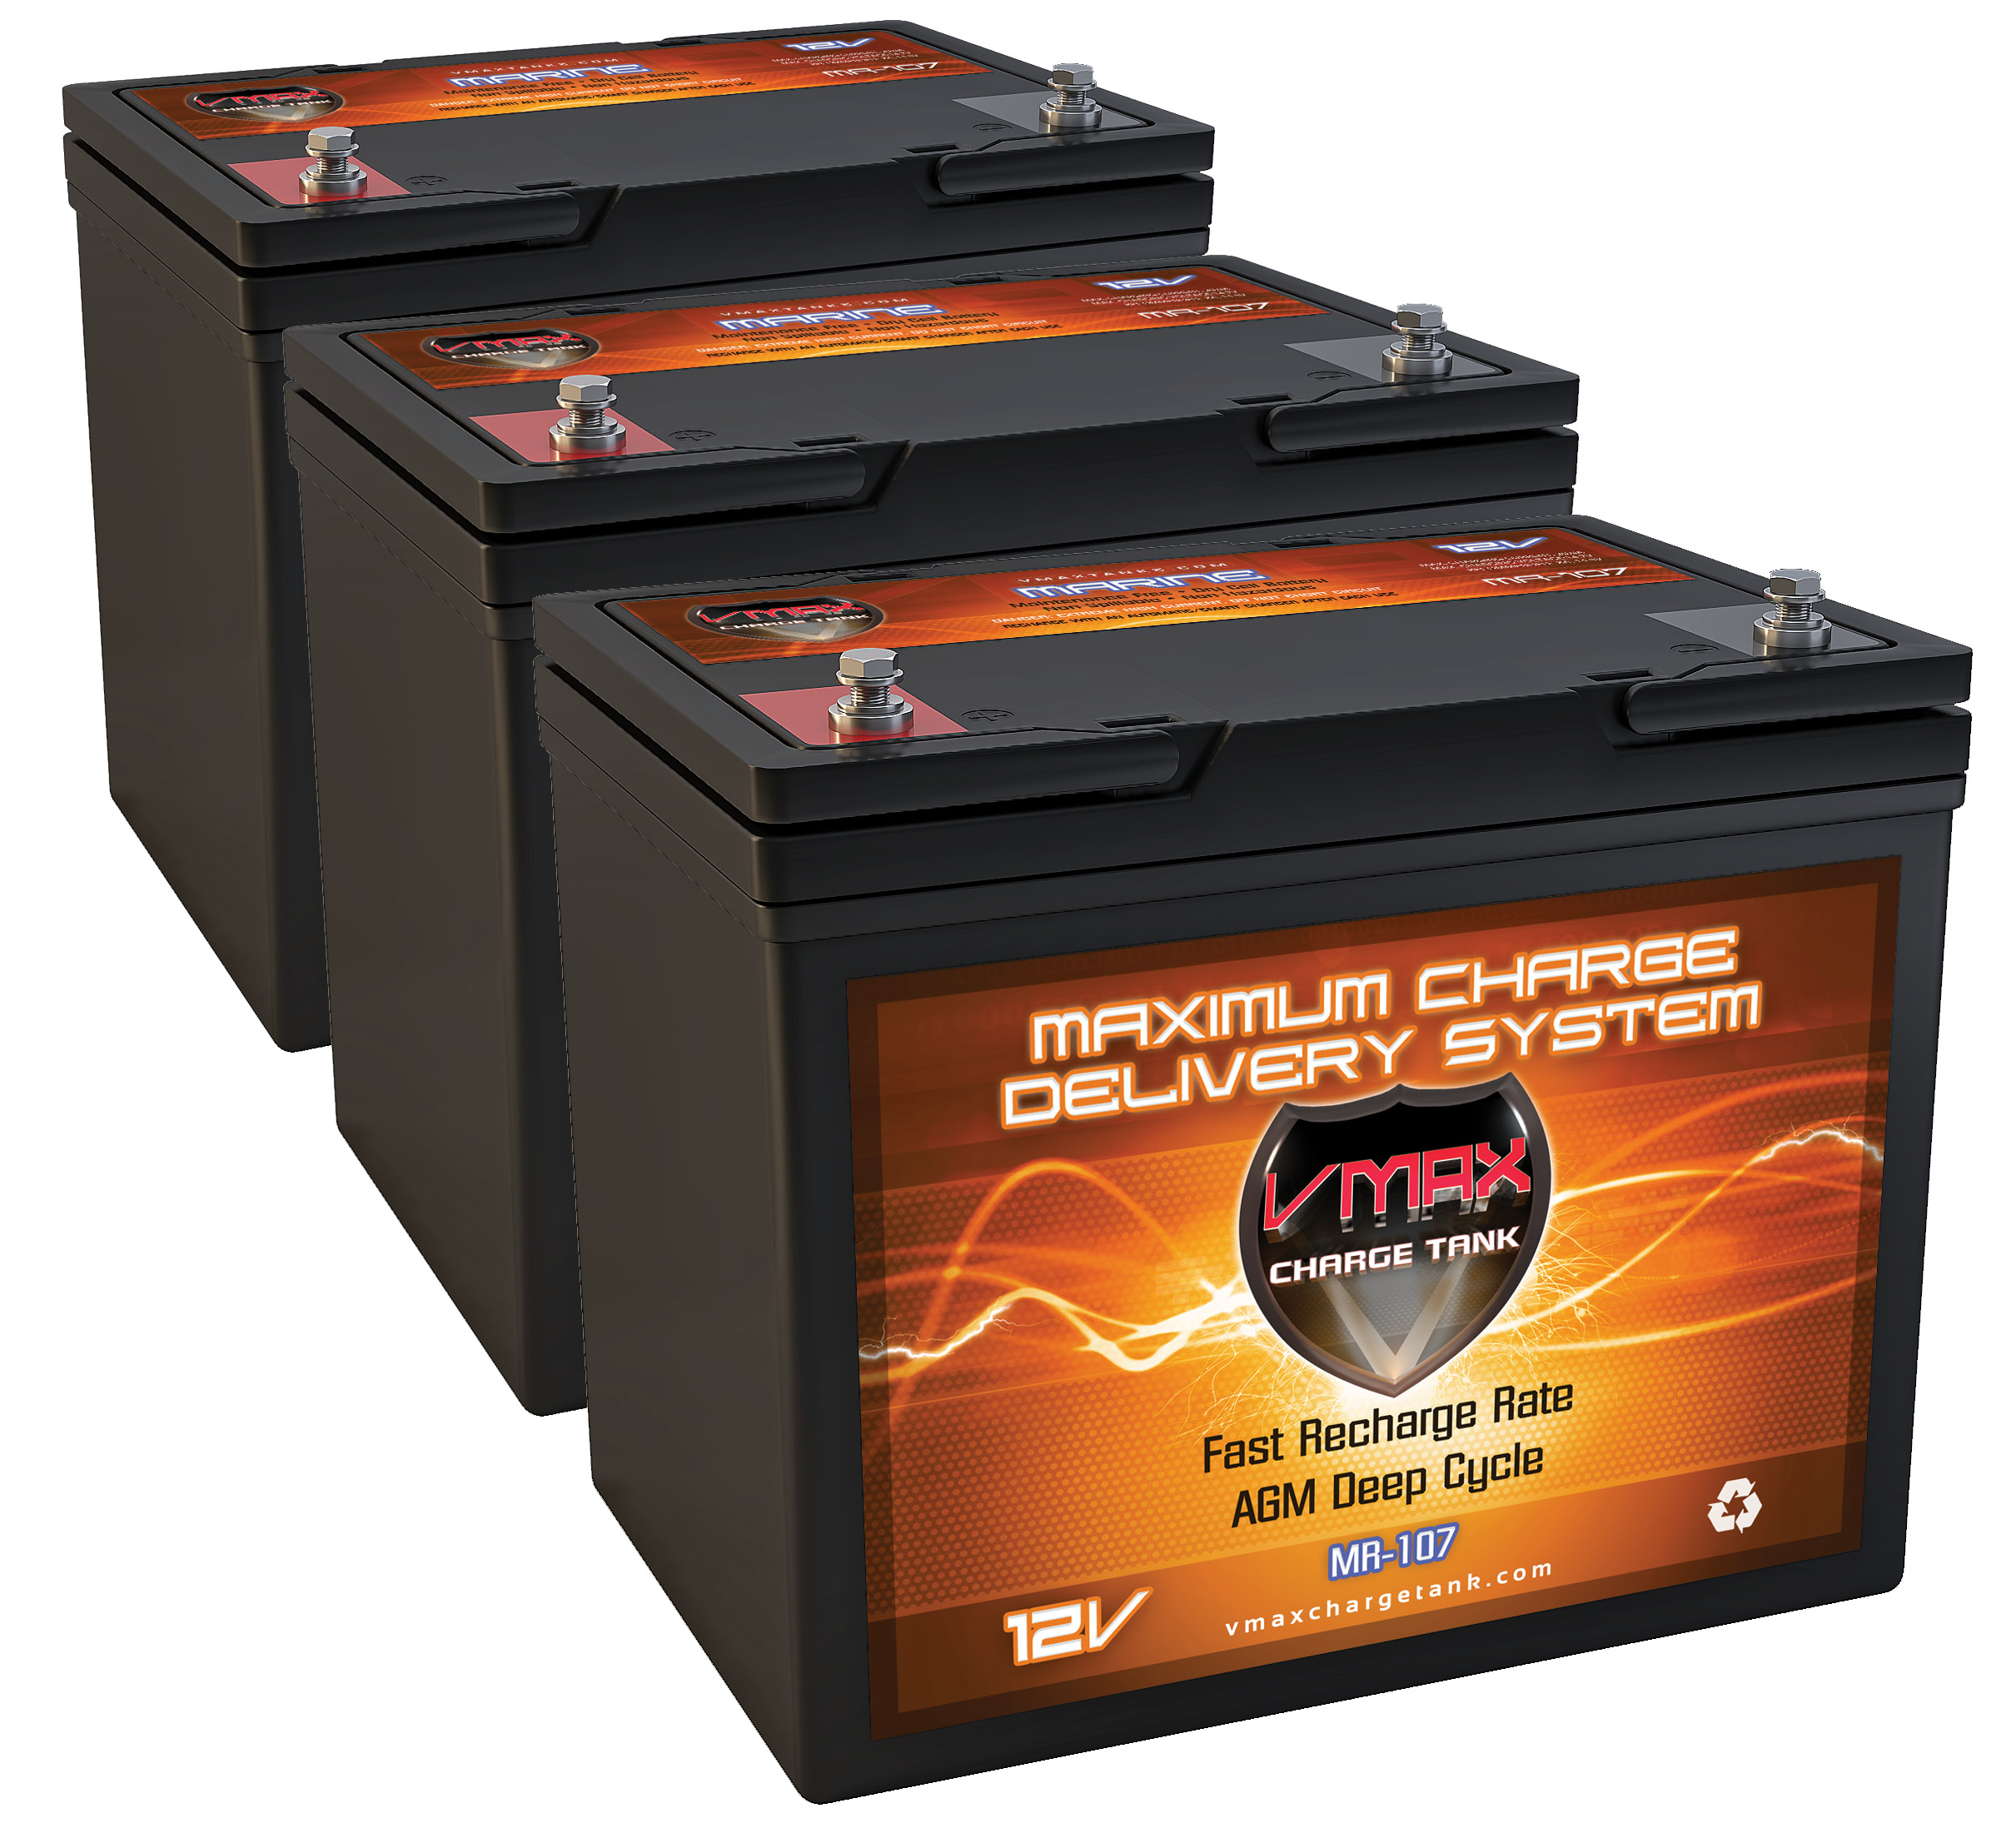 QTY3 VMAX MR107-85 12V 85AH AGM Deep Cycle Batteries for Minn Kota Ultrex 112 US2 w i-Pilot & Bluetooth 36V 112lb... by VMAX USA